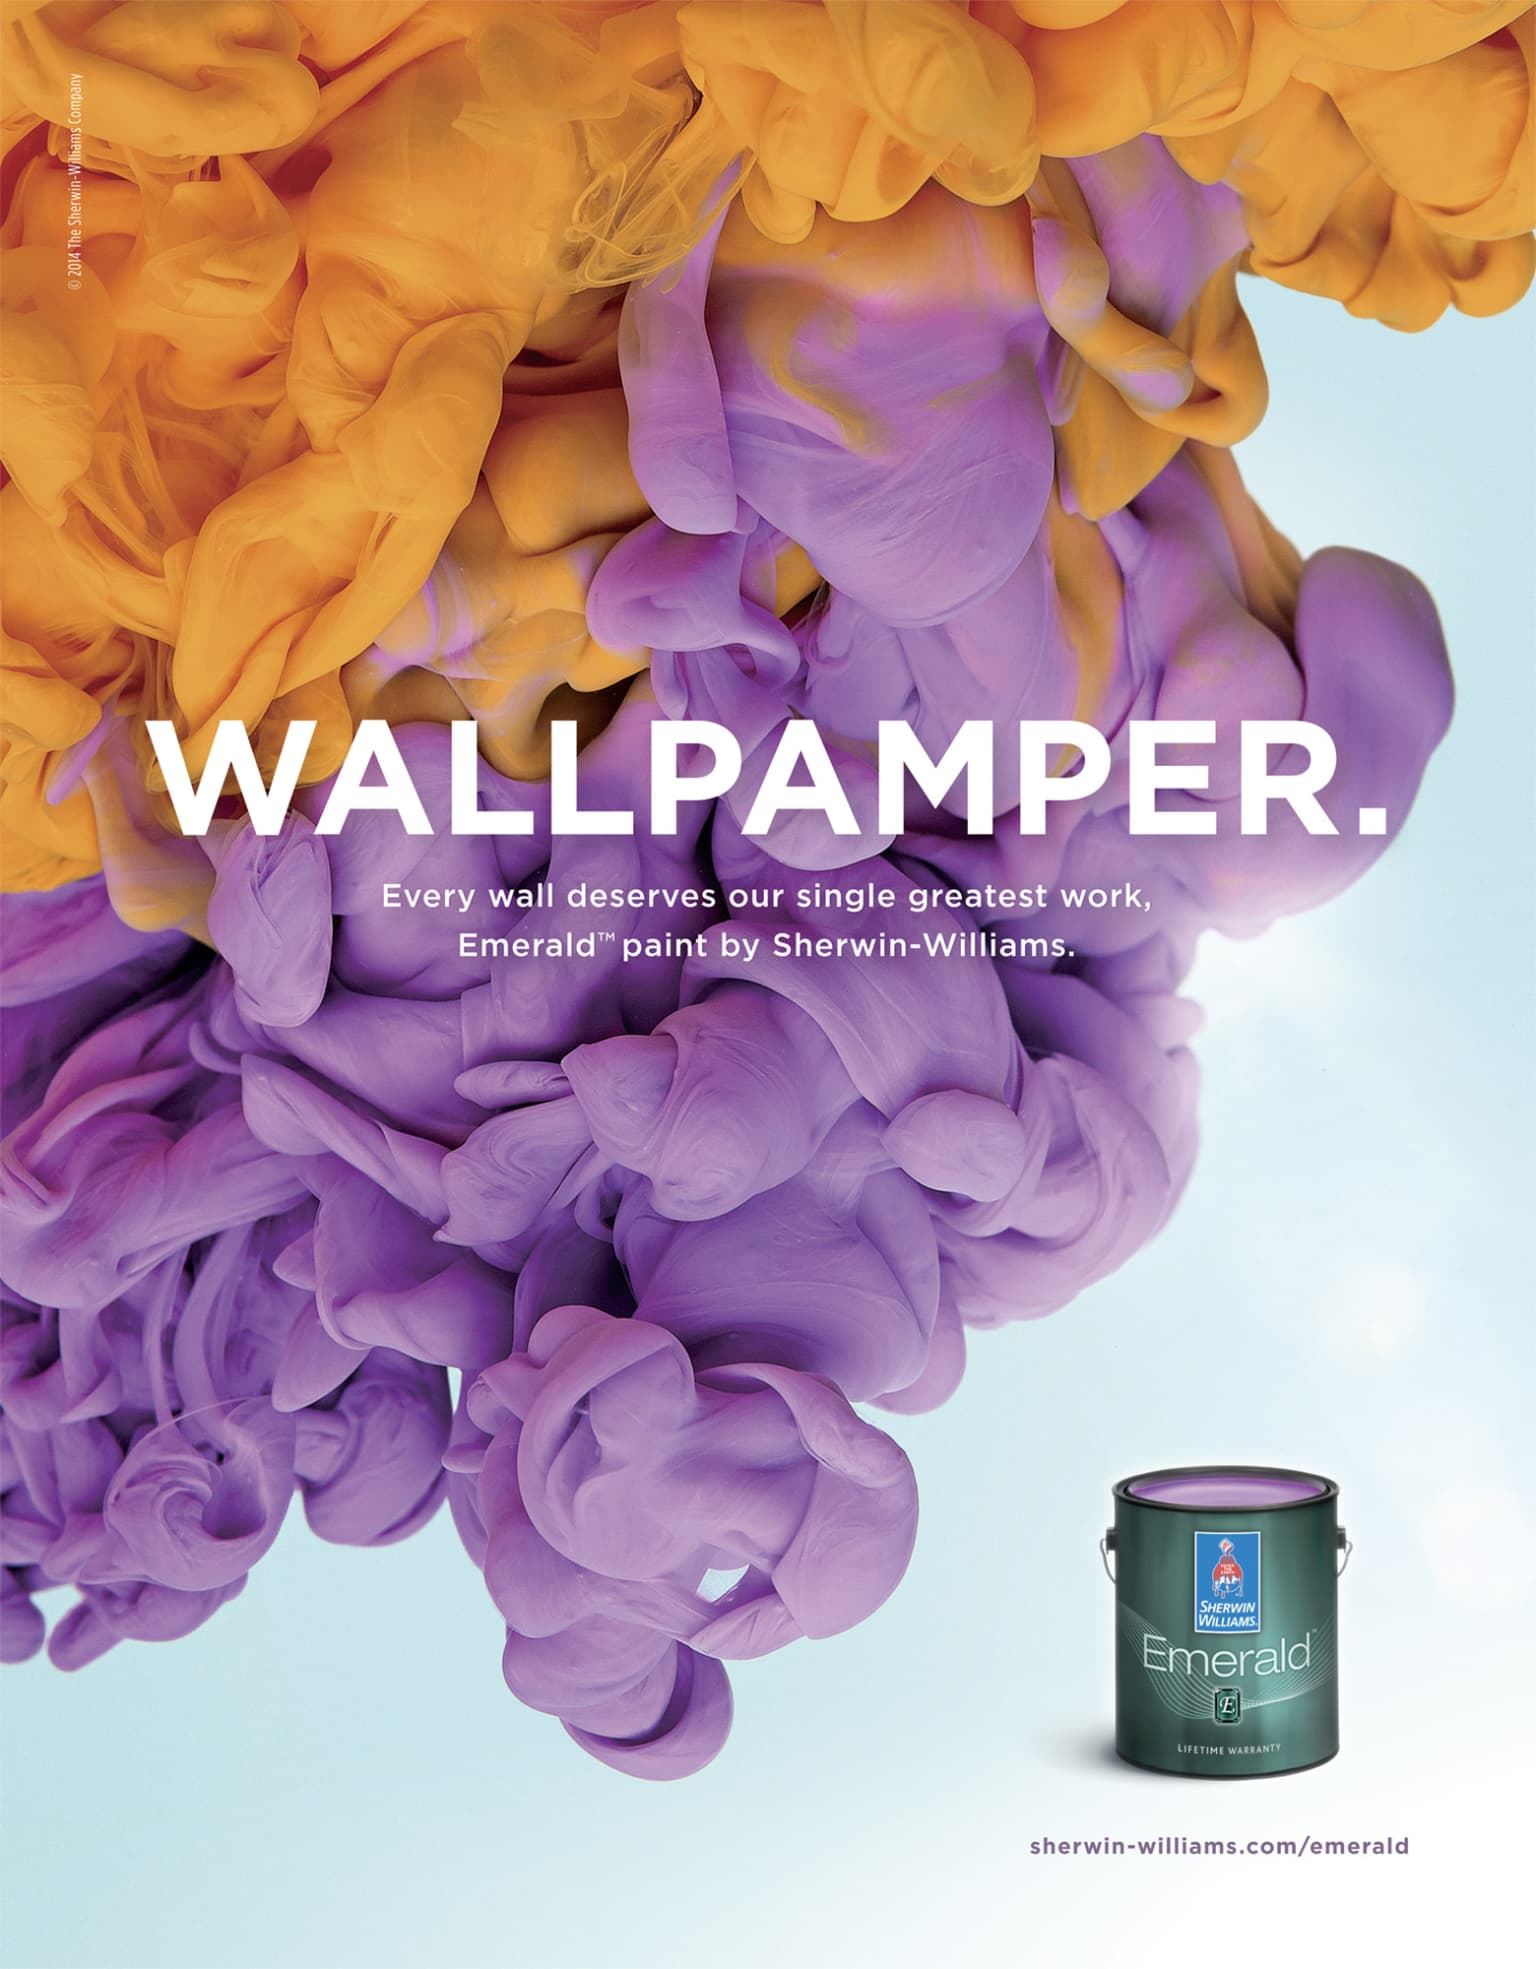 Sherwin-Williams 2015 ads